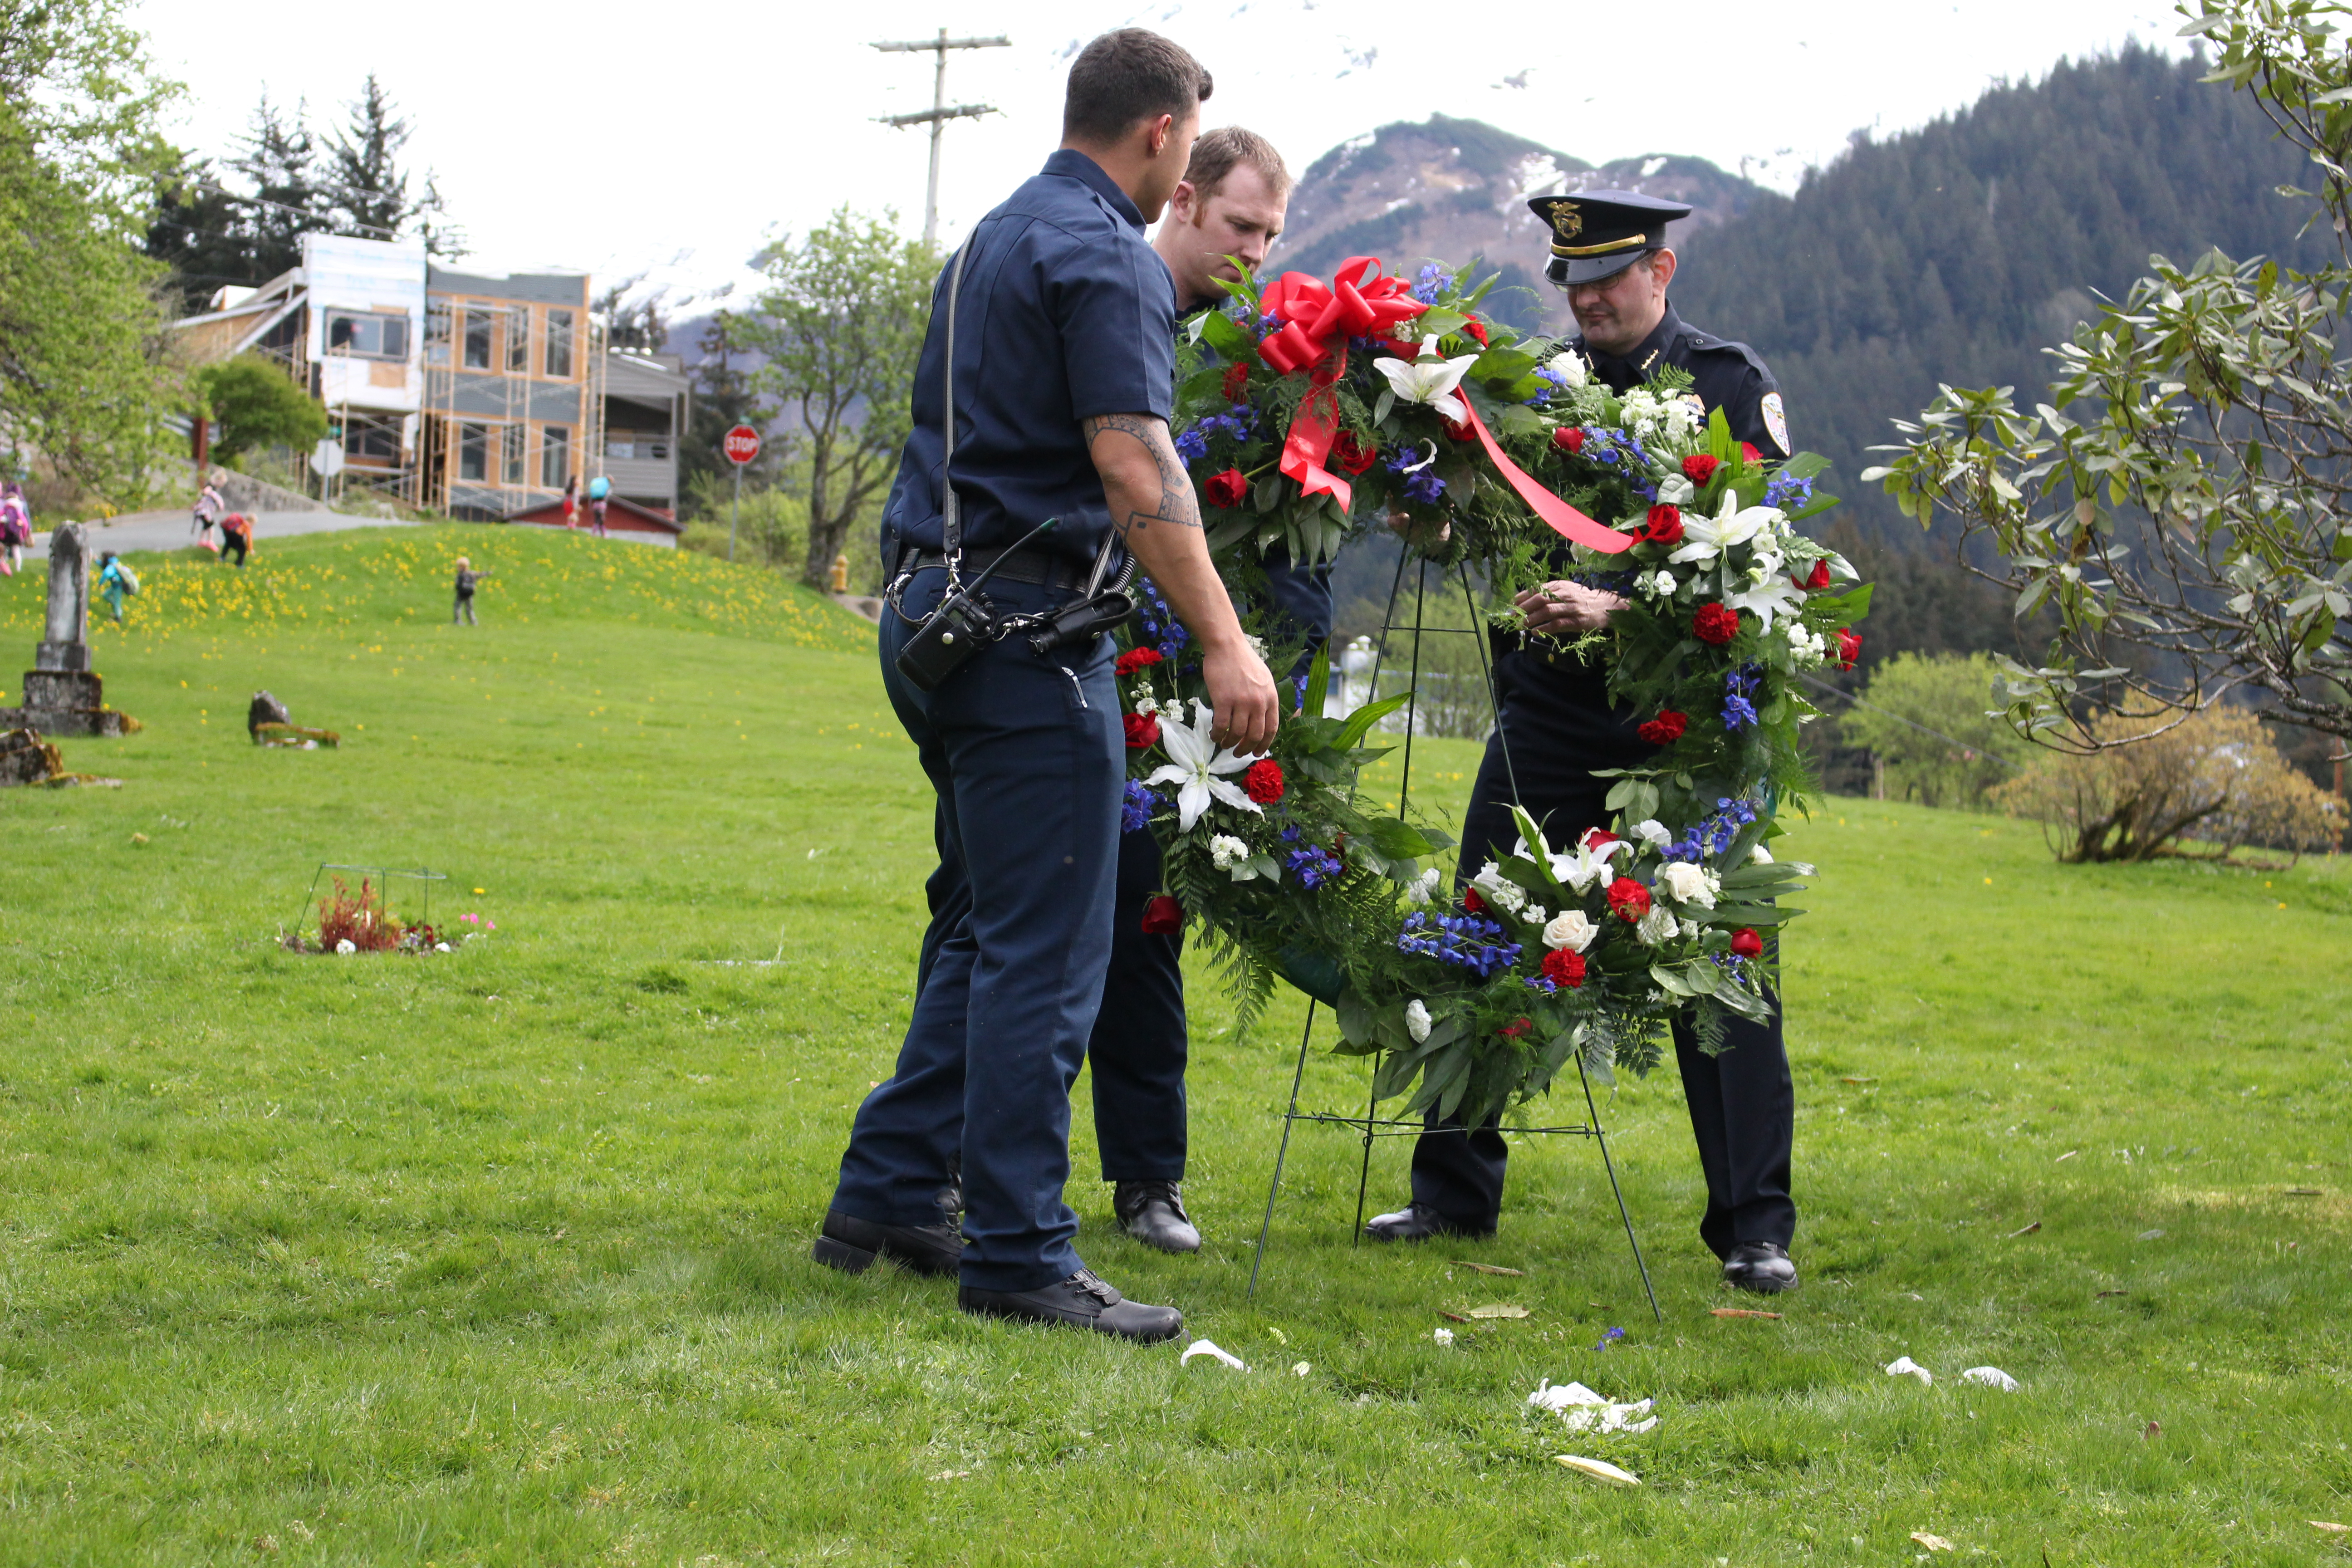 The Juneau Police Department places a wreath on the grave of Officer Richard Adair. (Photo by Elizabeth Jenkins/KTOO)